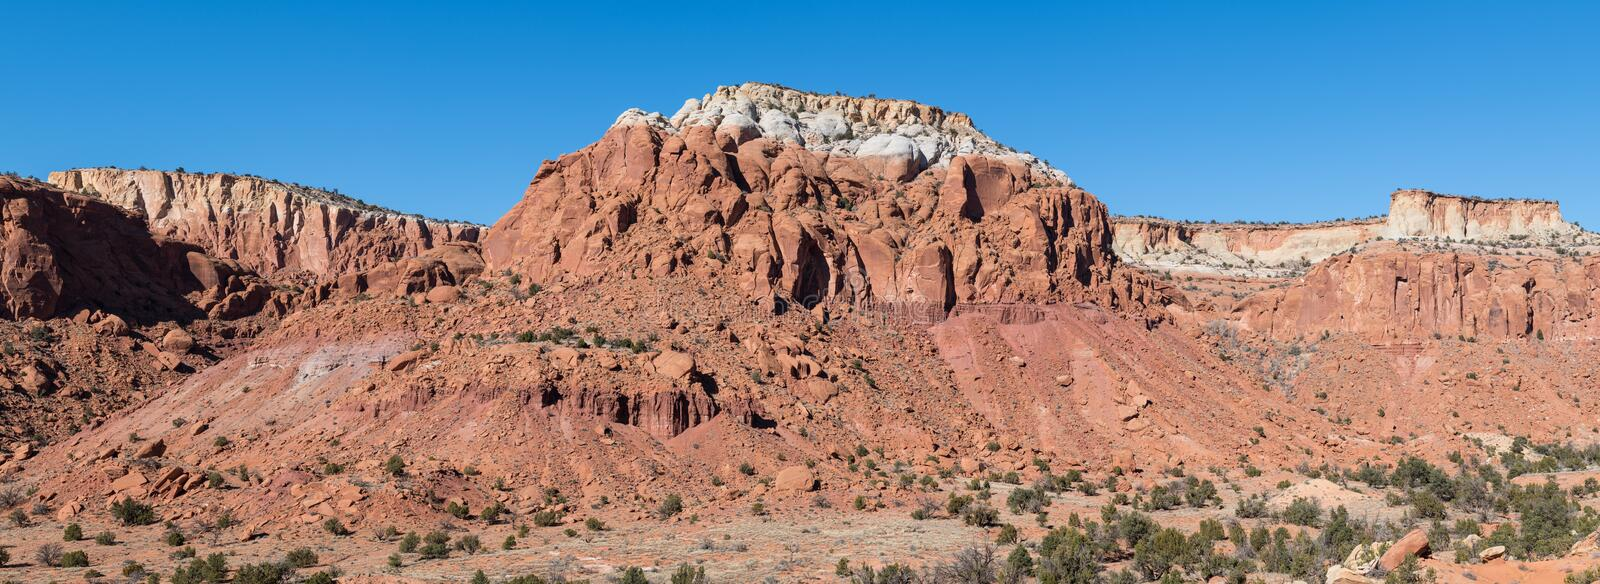 Panorama of a landscape of colorful red rock mesas and cliffs in the American Southwest. Panoramic view of a vast landscape of red rock mesas and cliffs in the royalty free stock photography